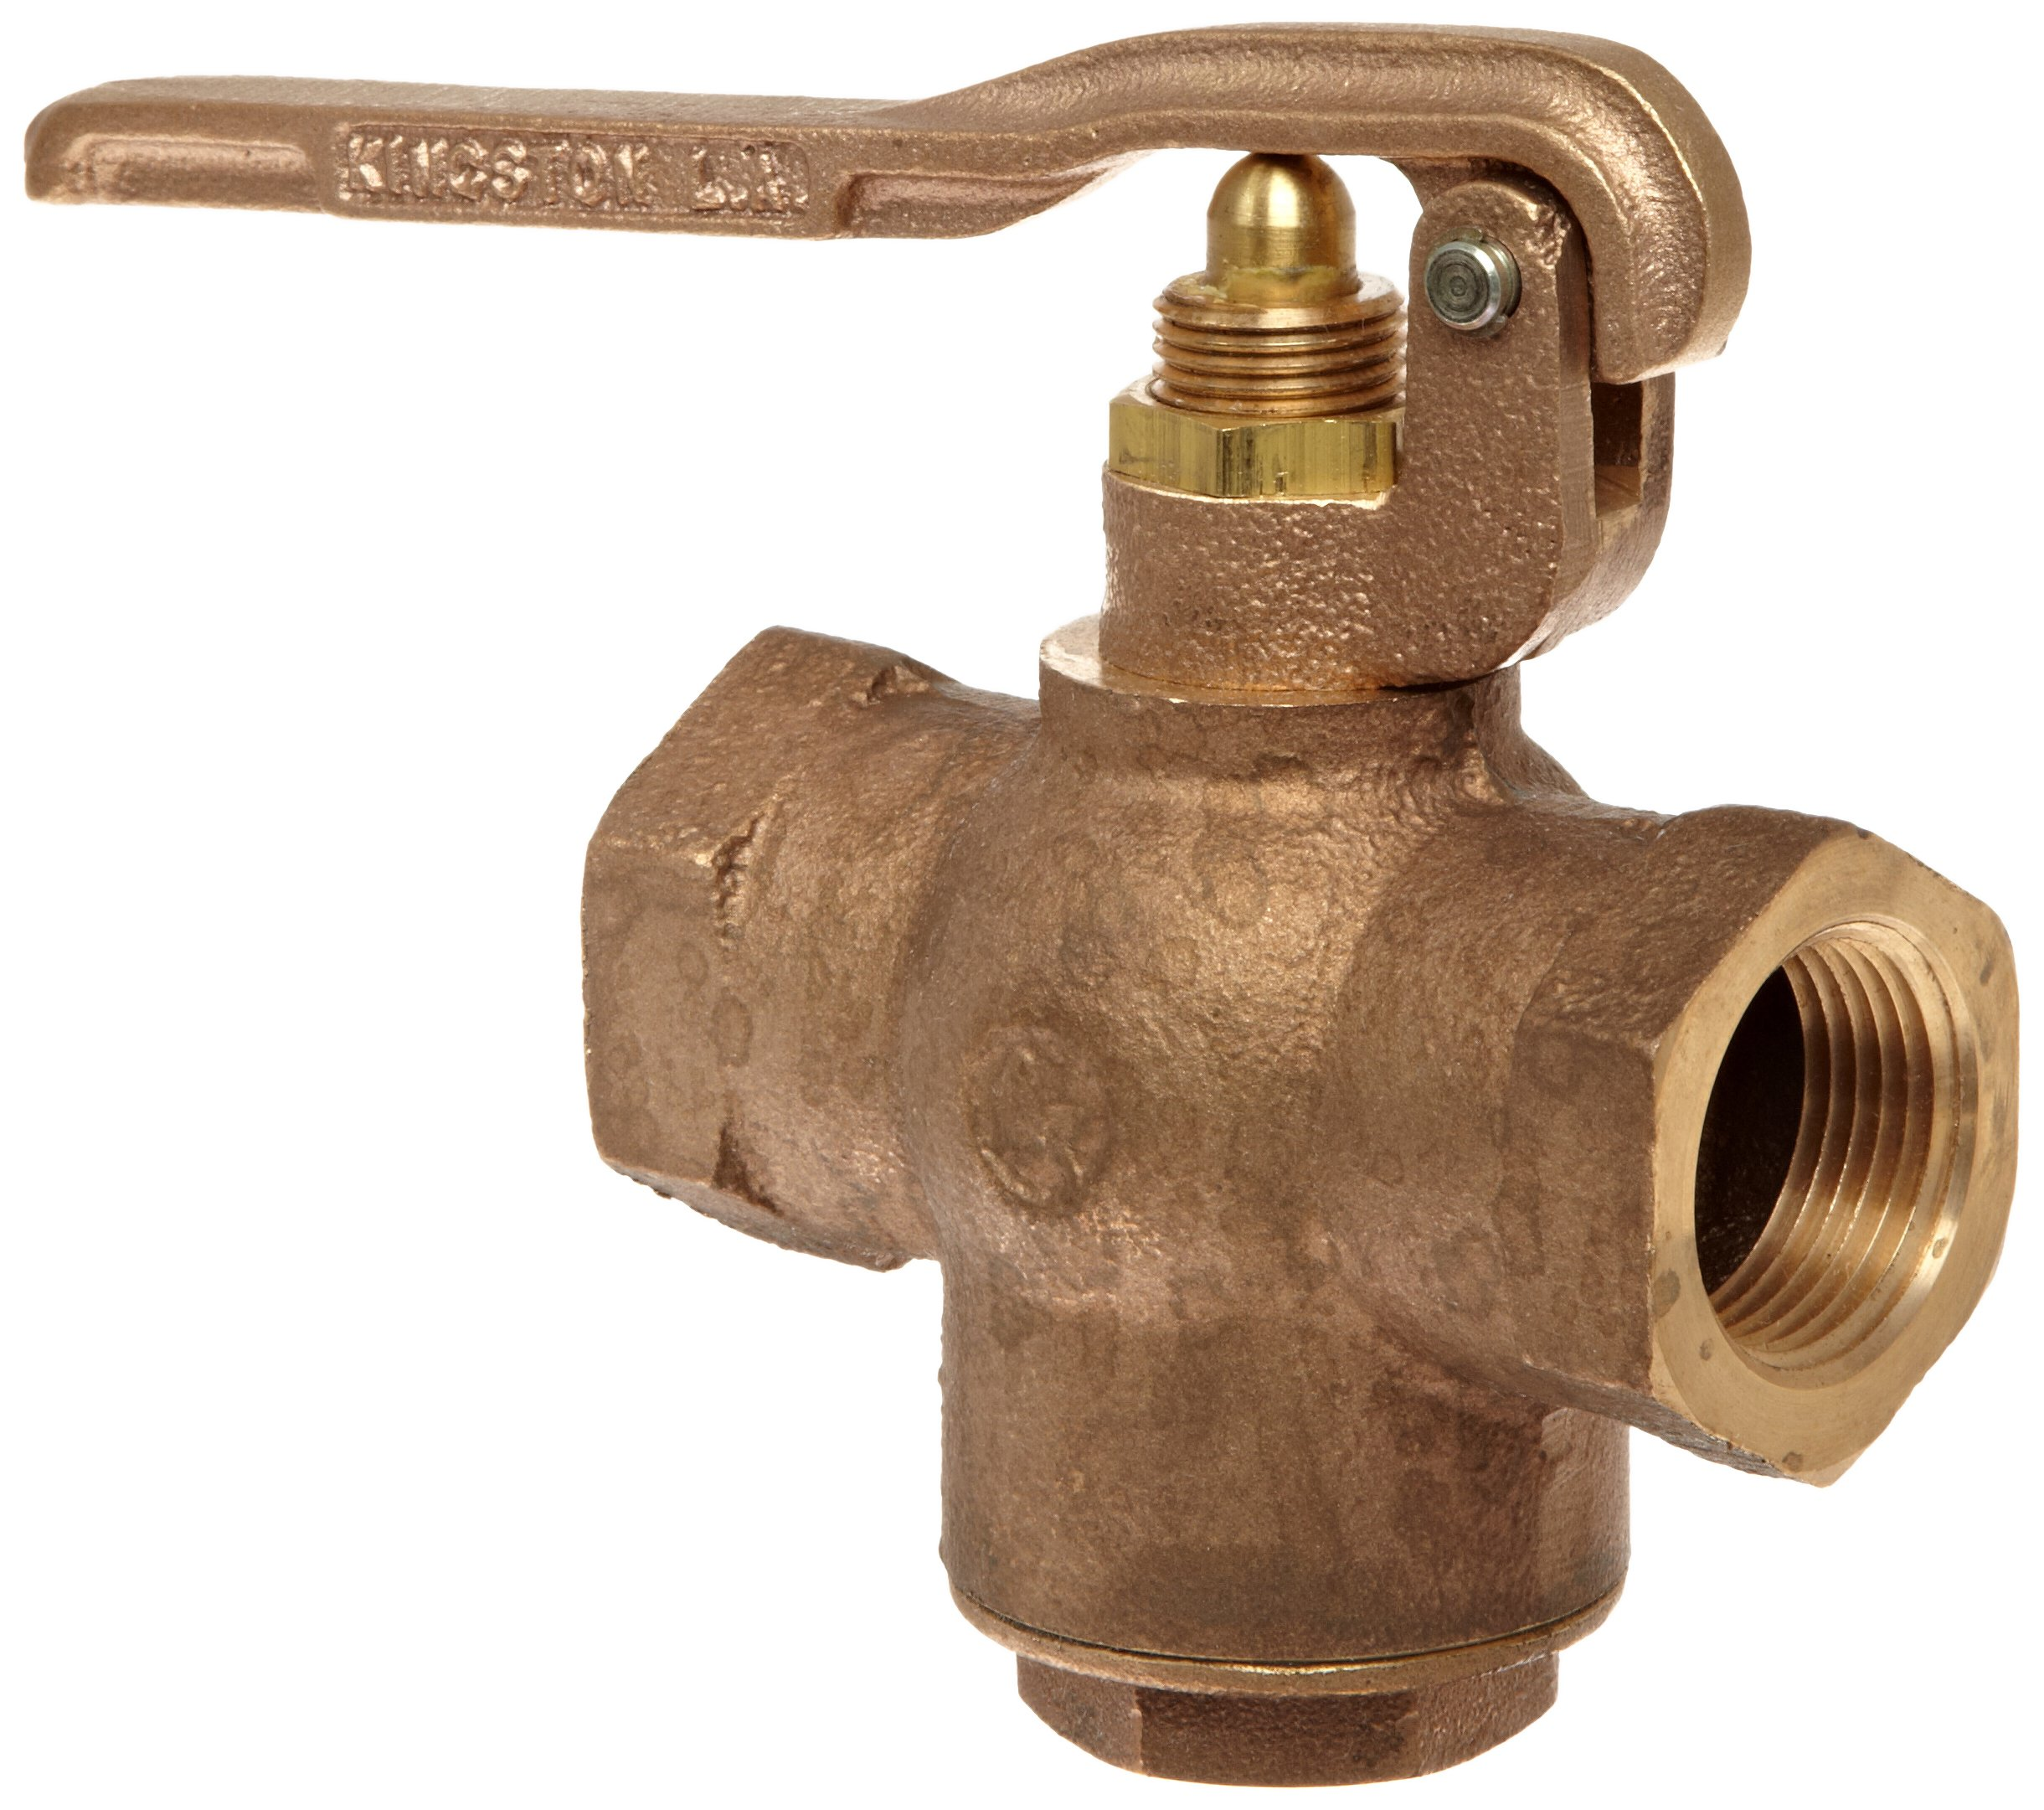 Kingston 305A Series Brass Quick Opening Flow Control Valve, Squeeze Lever, 1'' NPT Female